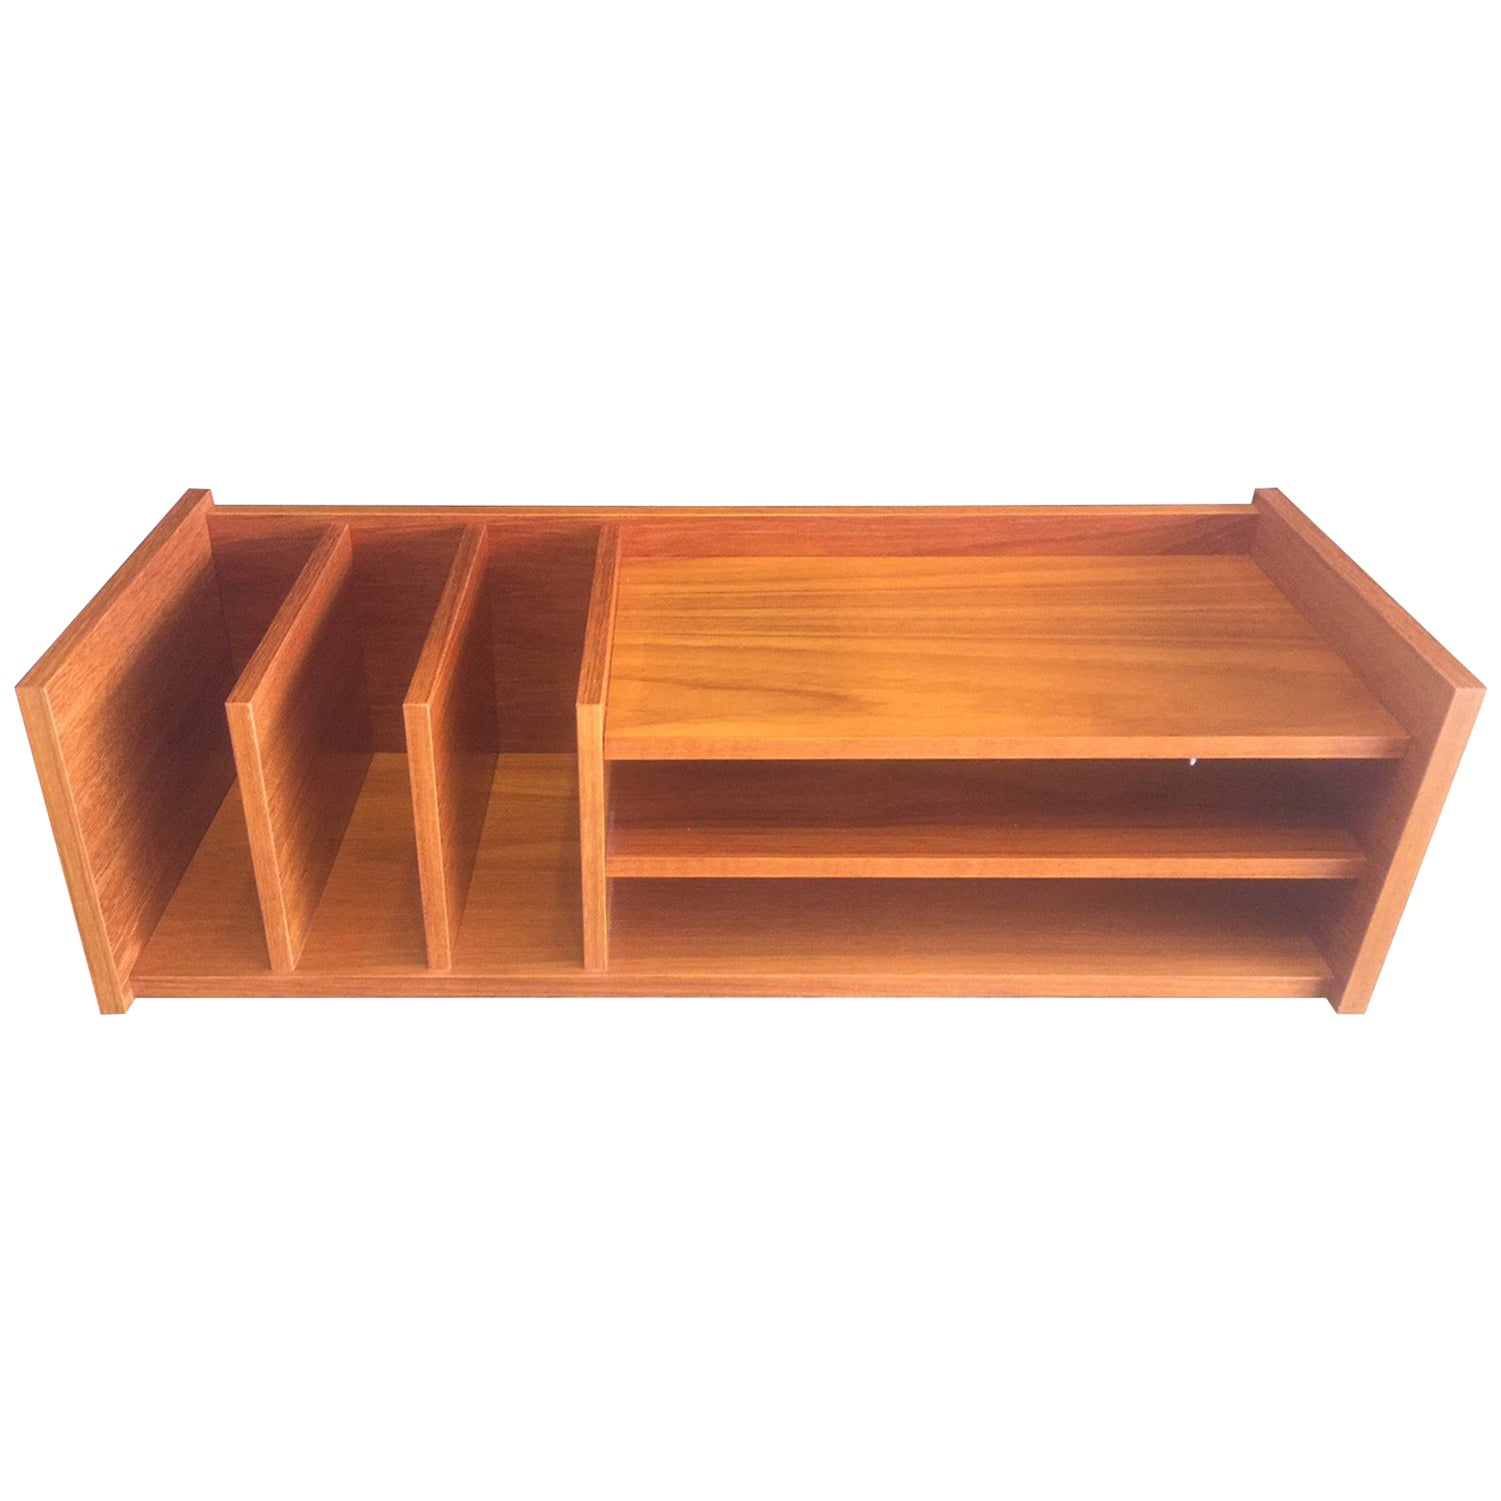 Danish Modern Desk Organizer or Letter Tray in Teak